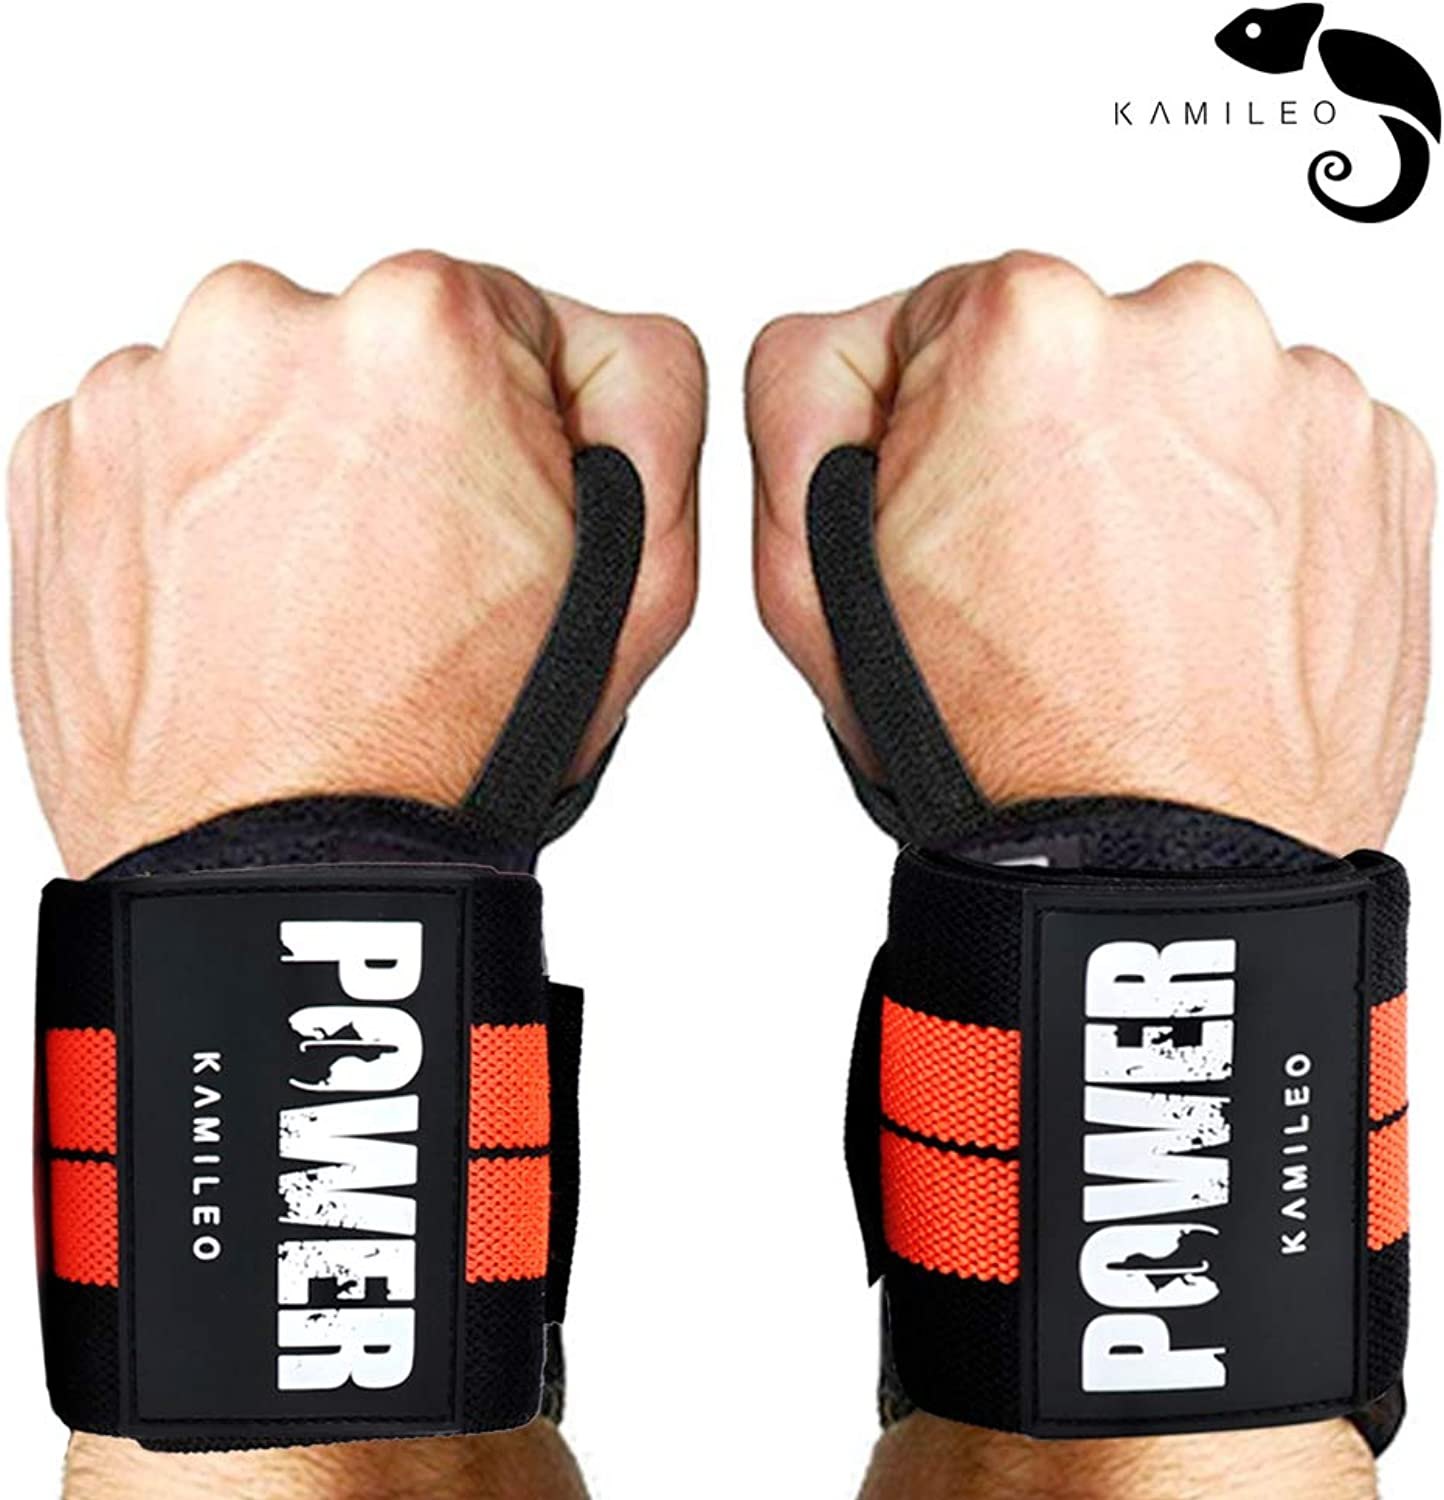 Kamileo Lifting Straps, Wrist Support, Weight Lifting Wraps with Thumb Loops for Men & Women, Weight Lifting, Xfit, Powerlifting, Strength Training